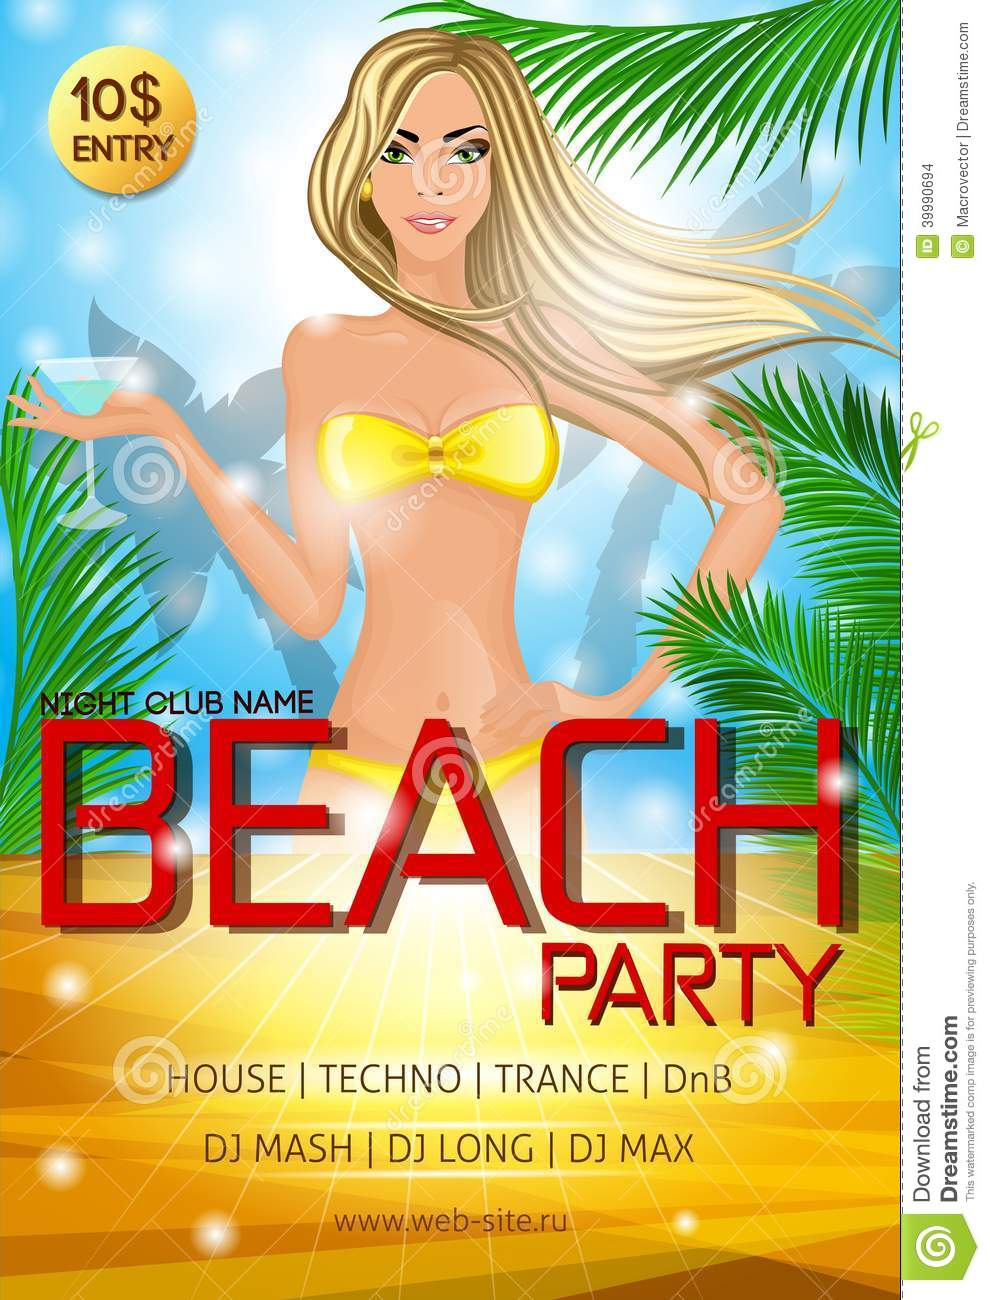 Night Club Beach Party Poster Stock Vector Image 39990694